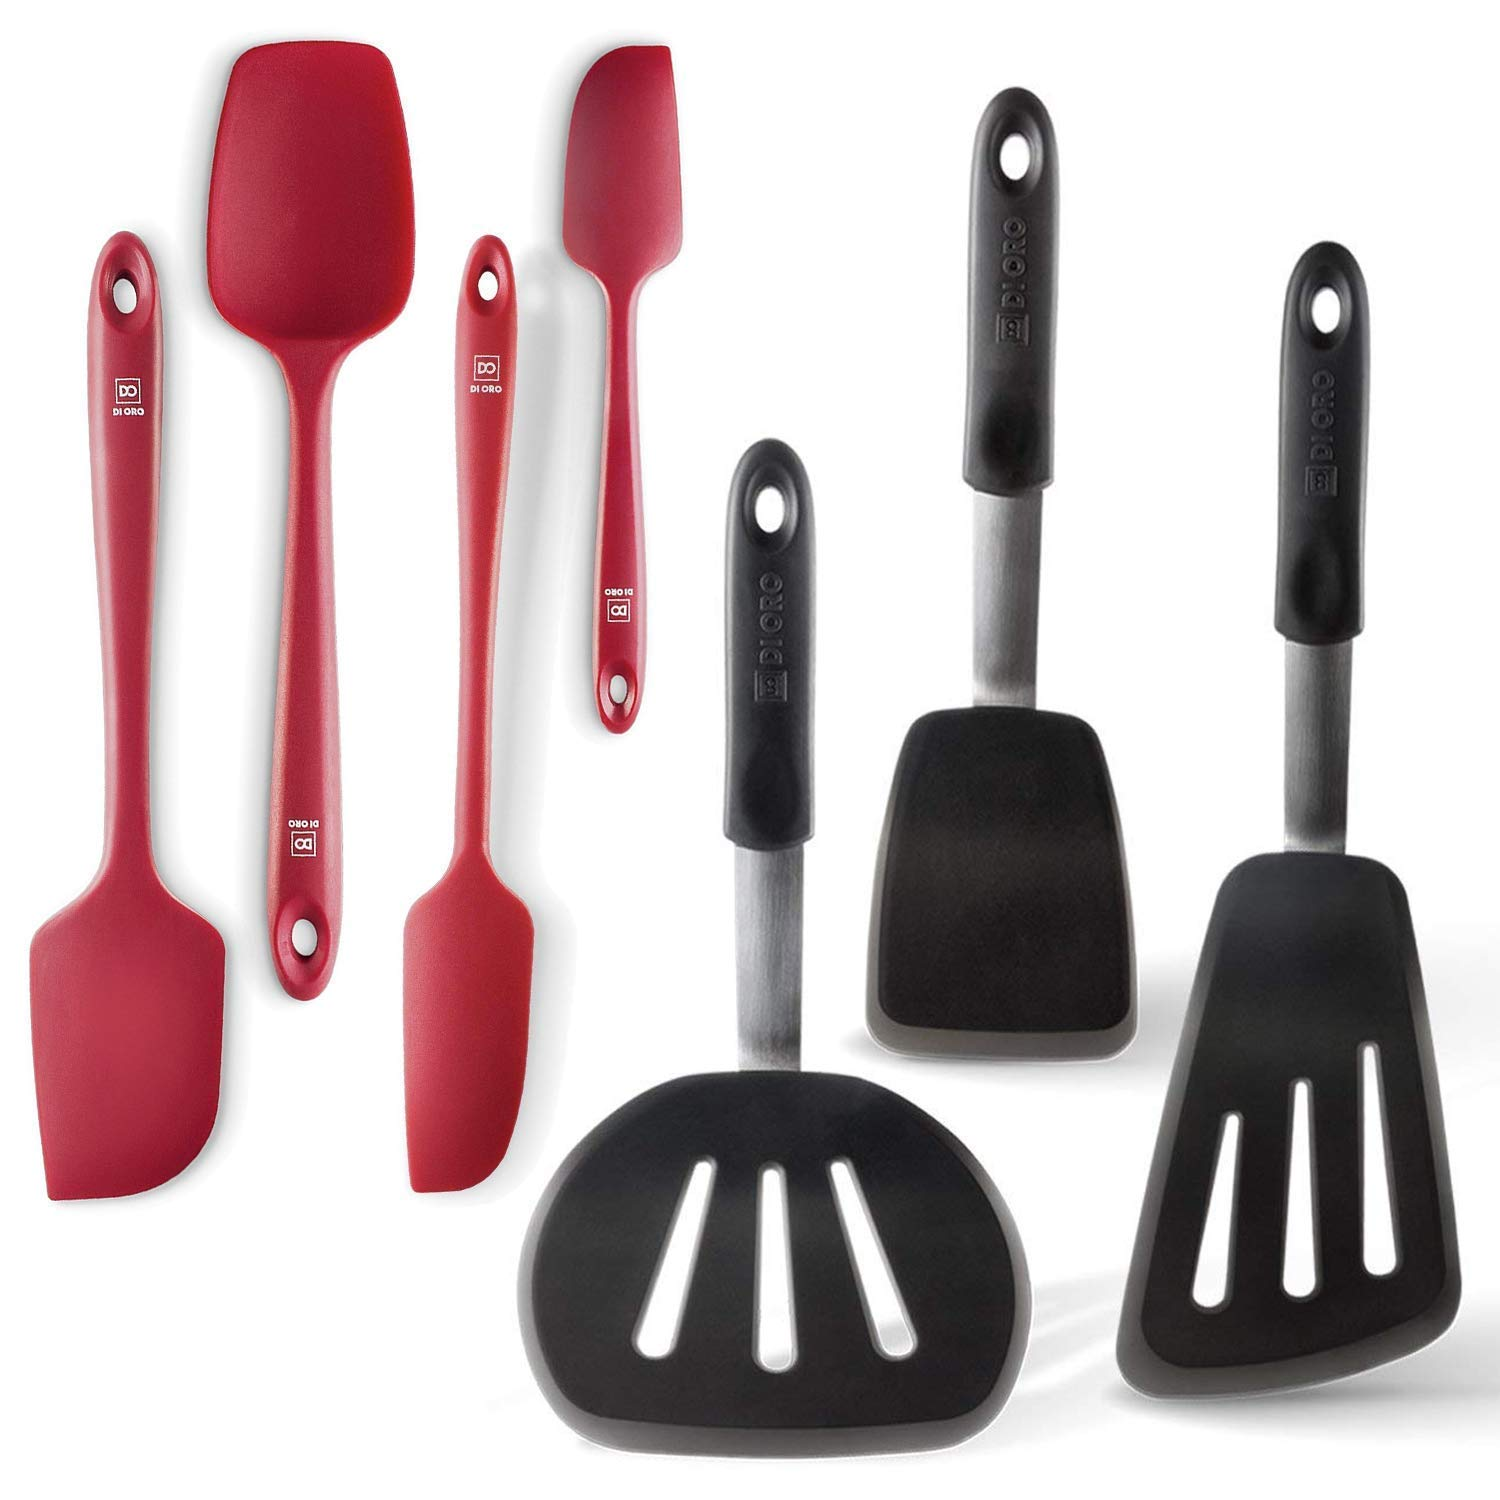 DI ORO Chef Series 3-Piece Silicone Turner Spatula Set - 600ºF Heat-Resistant Flexible Rubber Silicone Spatulas - Best Silicone Cooking Utensil Set - Egg Turners, Pancake Flippers, Kitchen Spatulas SYNCHKG073691